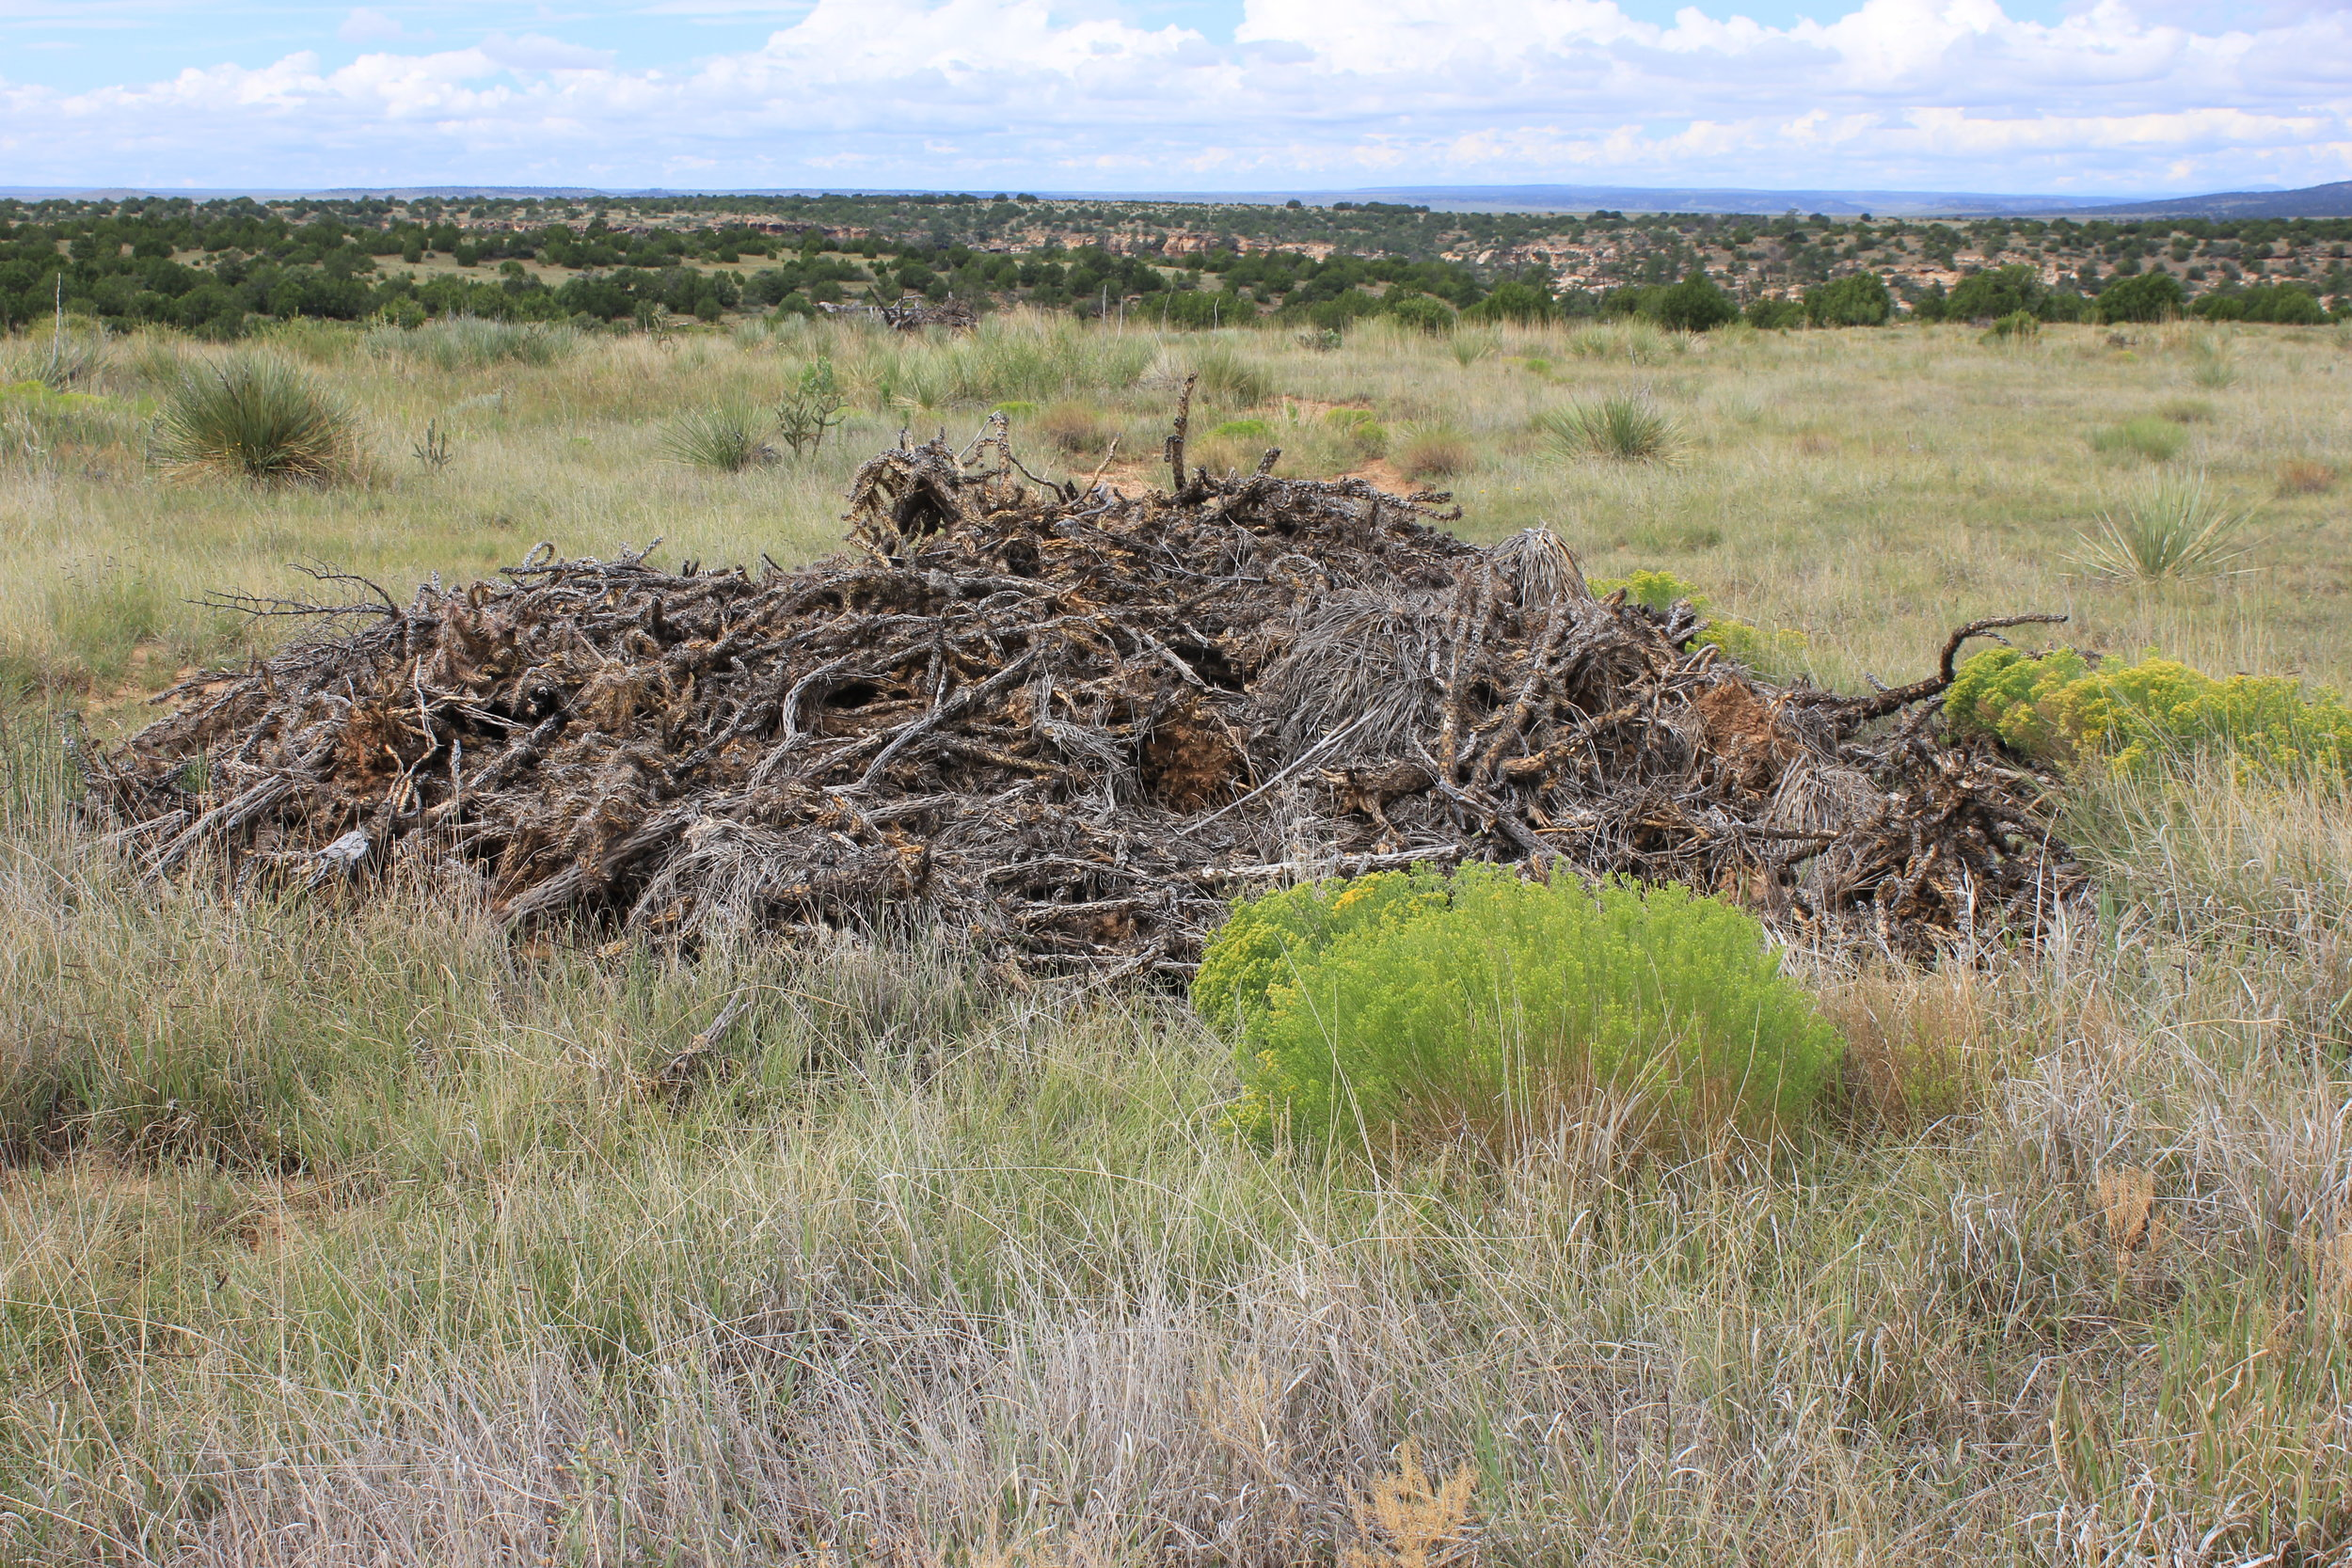 FIGURE 9. CHOLLA THAT IS UPROOTED WITH MECHANICAL EQUIPMENT MUST BE STOCKPILED AND BURNED TO PREVENT PLANTS FROM RE-GROWING.